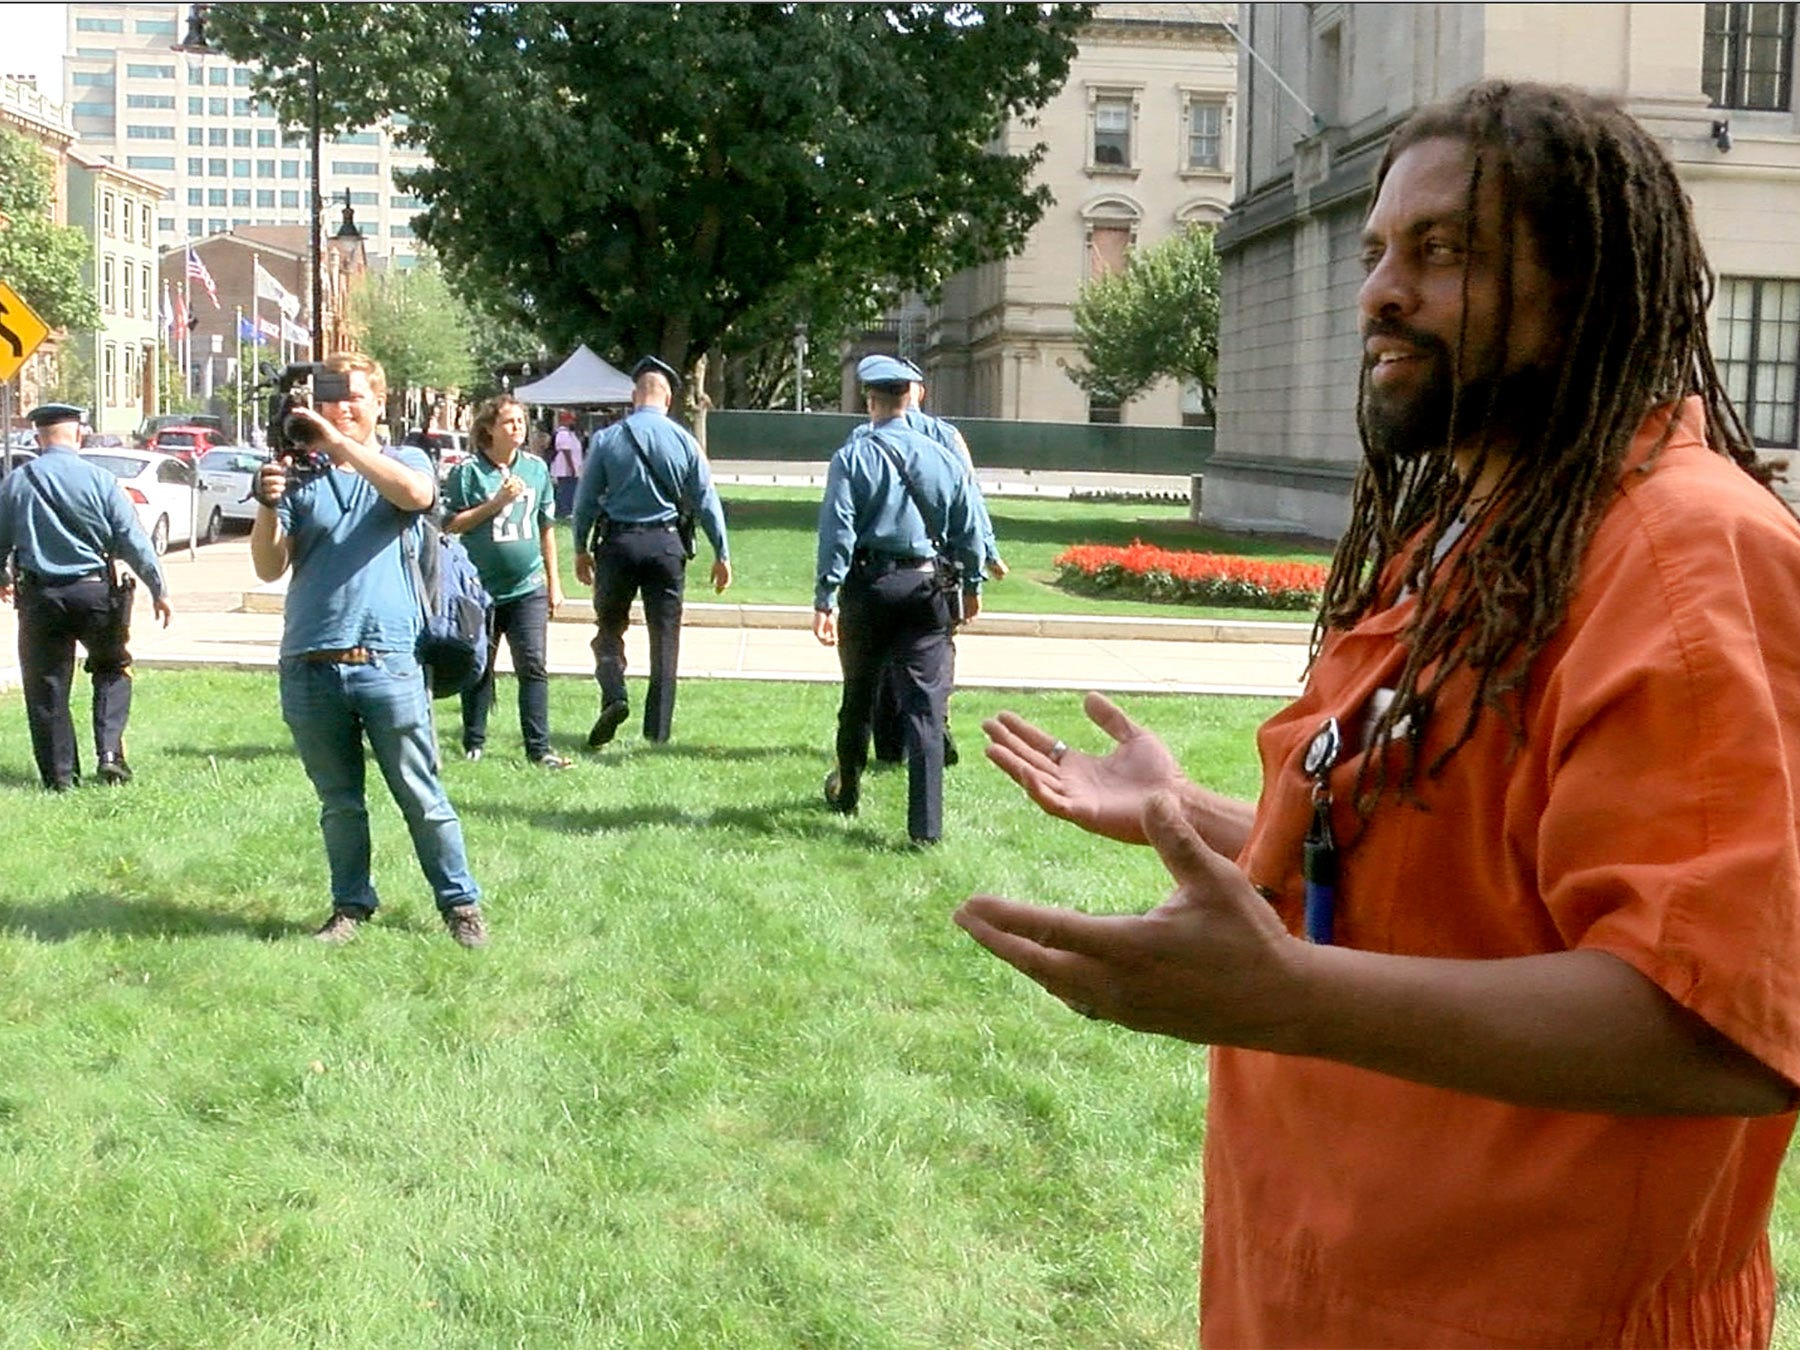 State Police walk away after asking Ed Forchion, known best as NJ Weedman, to leave the front of the Statehouse Annex on West State Street in Trenton Thursday, September 27, 2018.  He billed this as his boldest stunt - selling marijuana outside the Statehouse while daring police to arrest him.